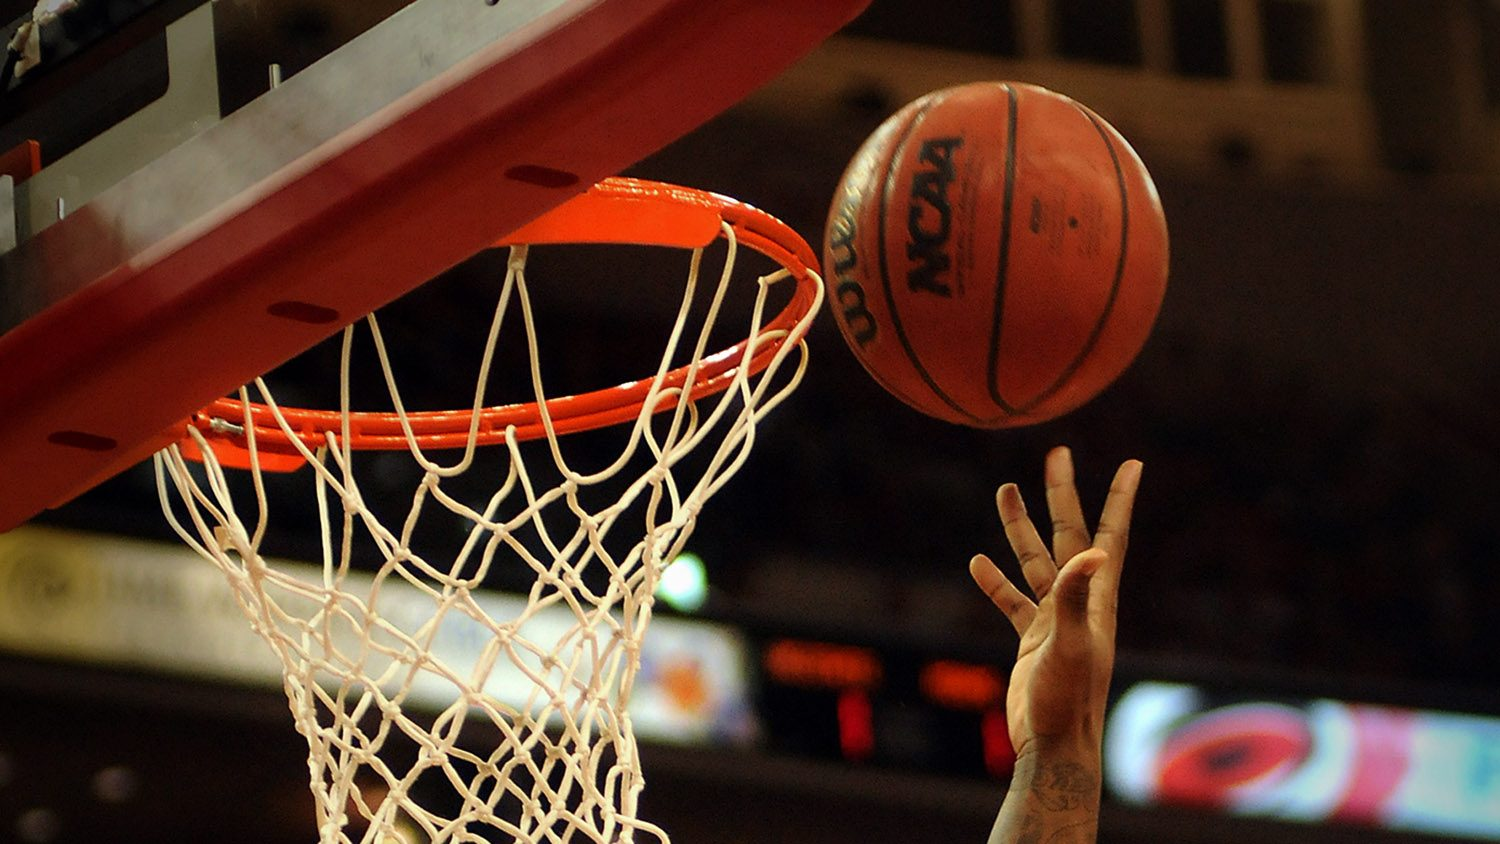 CALS' Mike Walden asks whether pro athletes are overpaid; photo of basketball and hoop